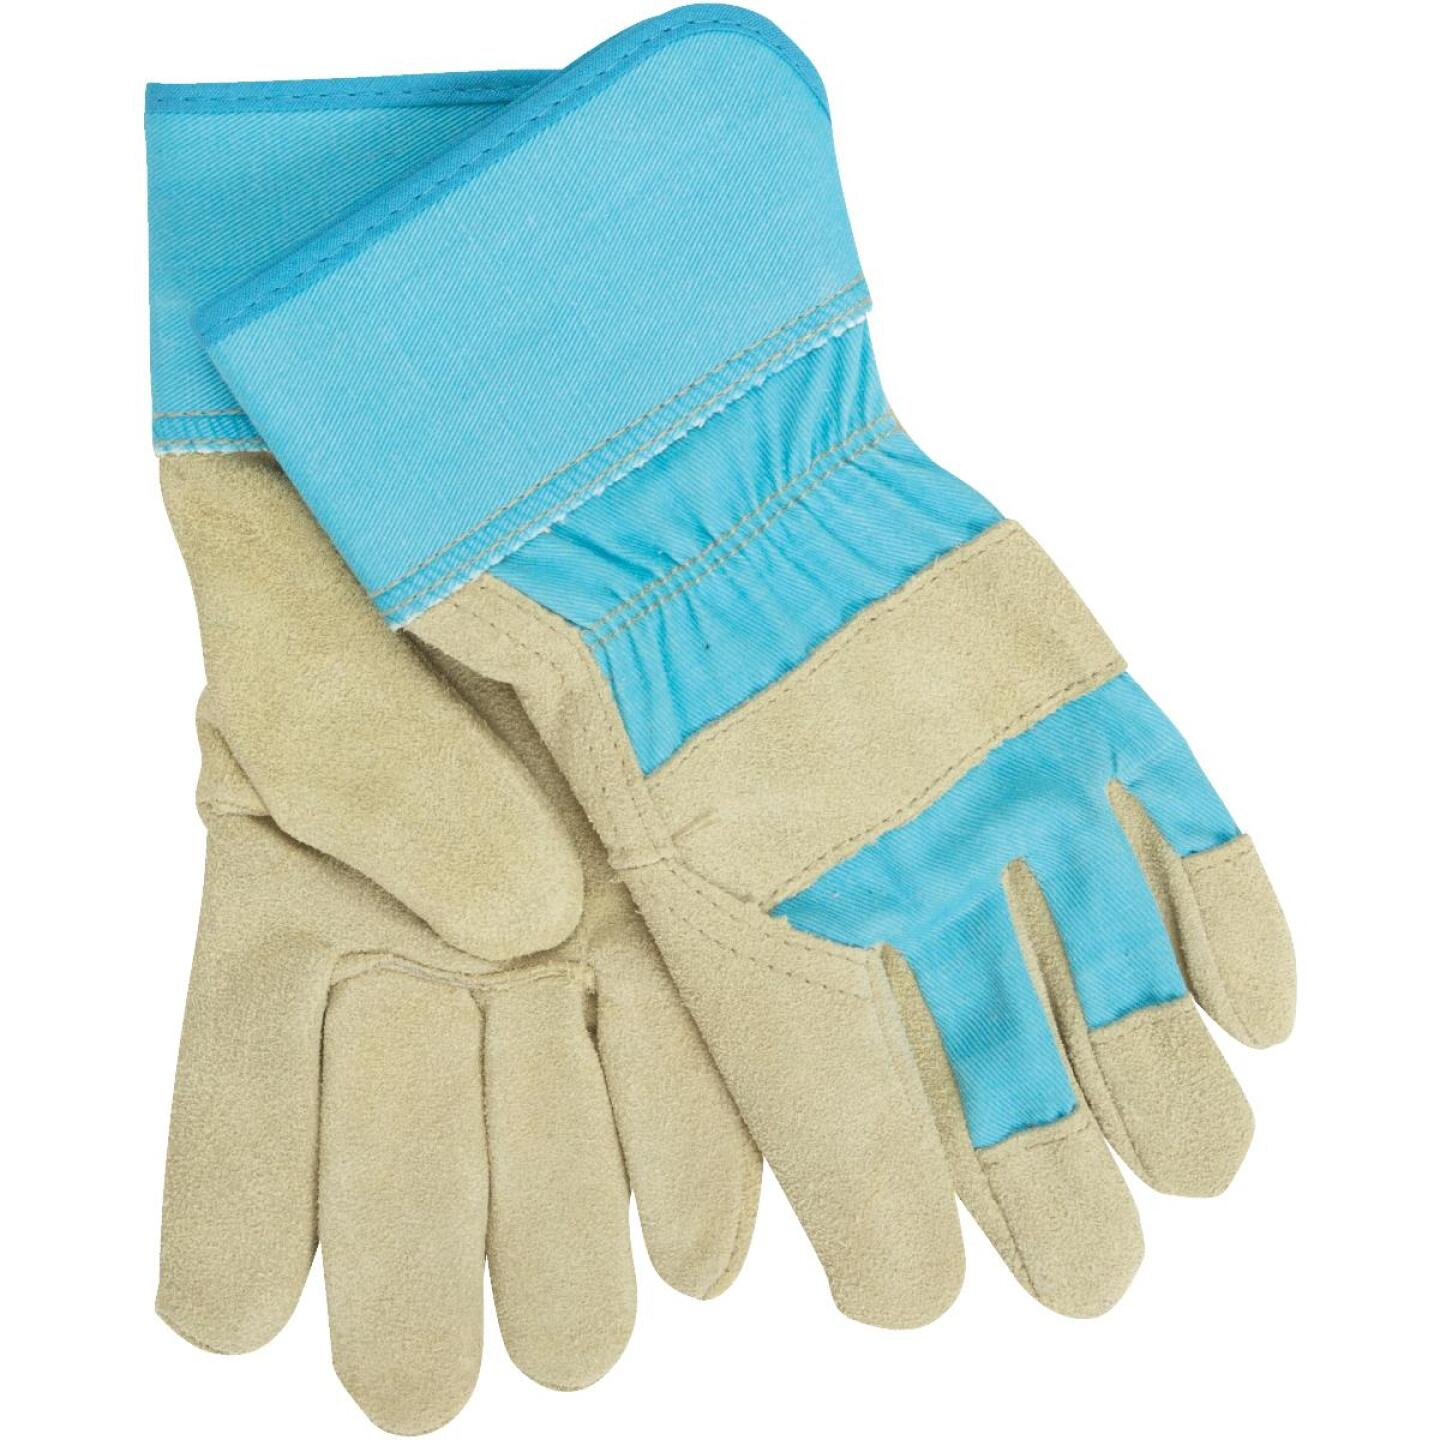 West Chester Protective Gear Dirty Work Women's Small Leather Work Glove Image 1